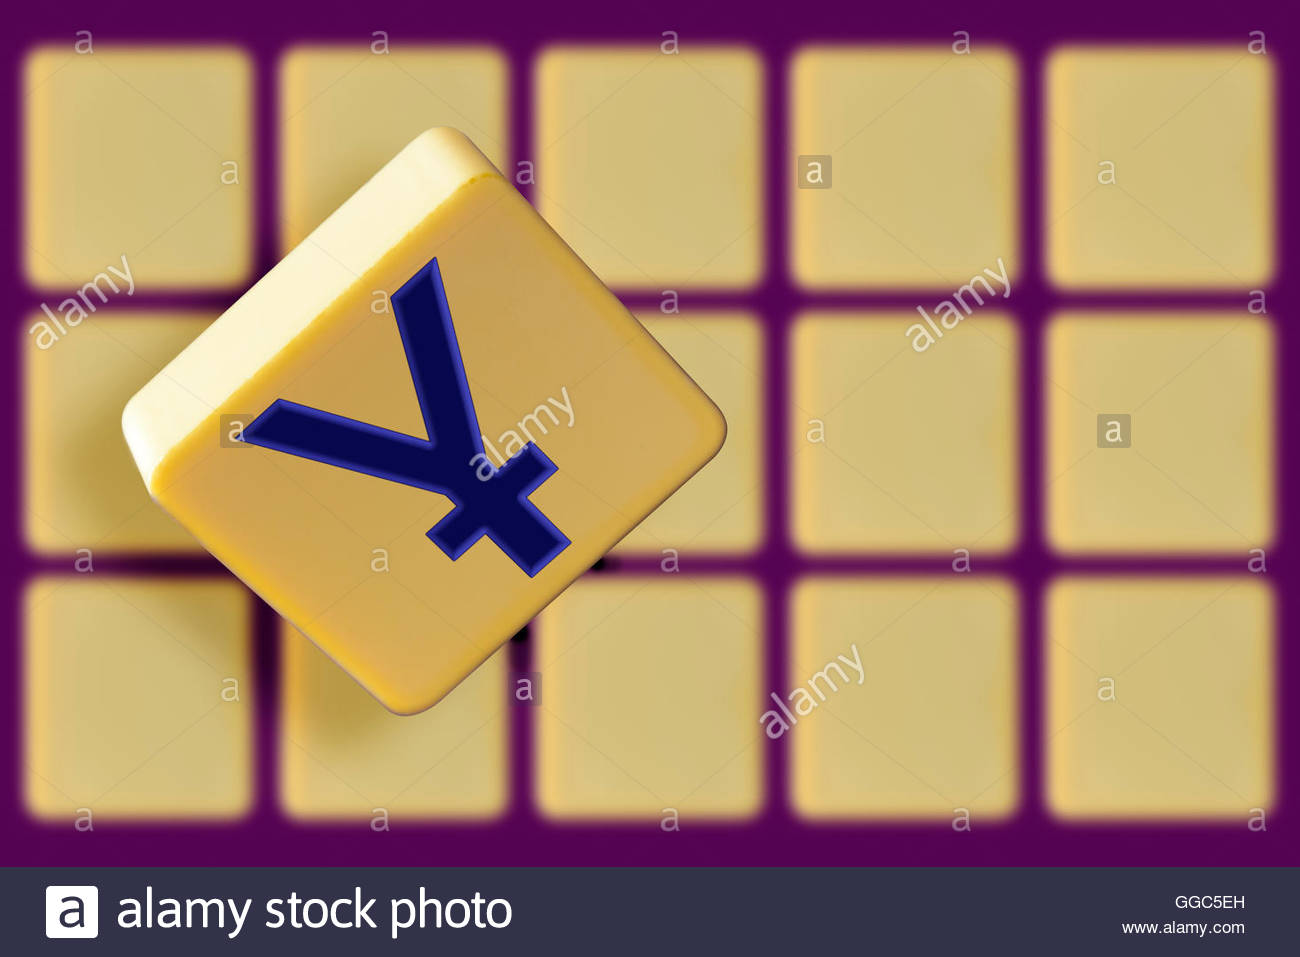 Currency symbol for yen and yuan alphabet tile dorset england currency symbol for yen and yuan alphabet tile dorset england britain uk biocorpaavc Image collections